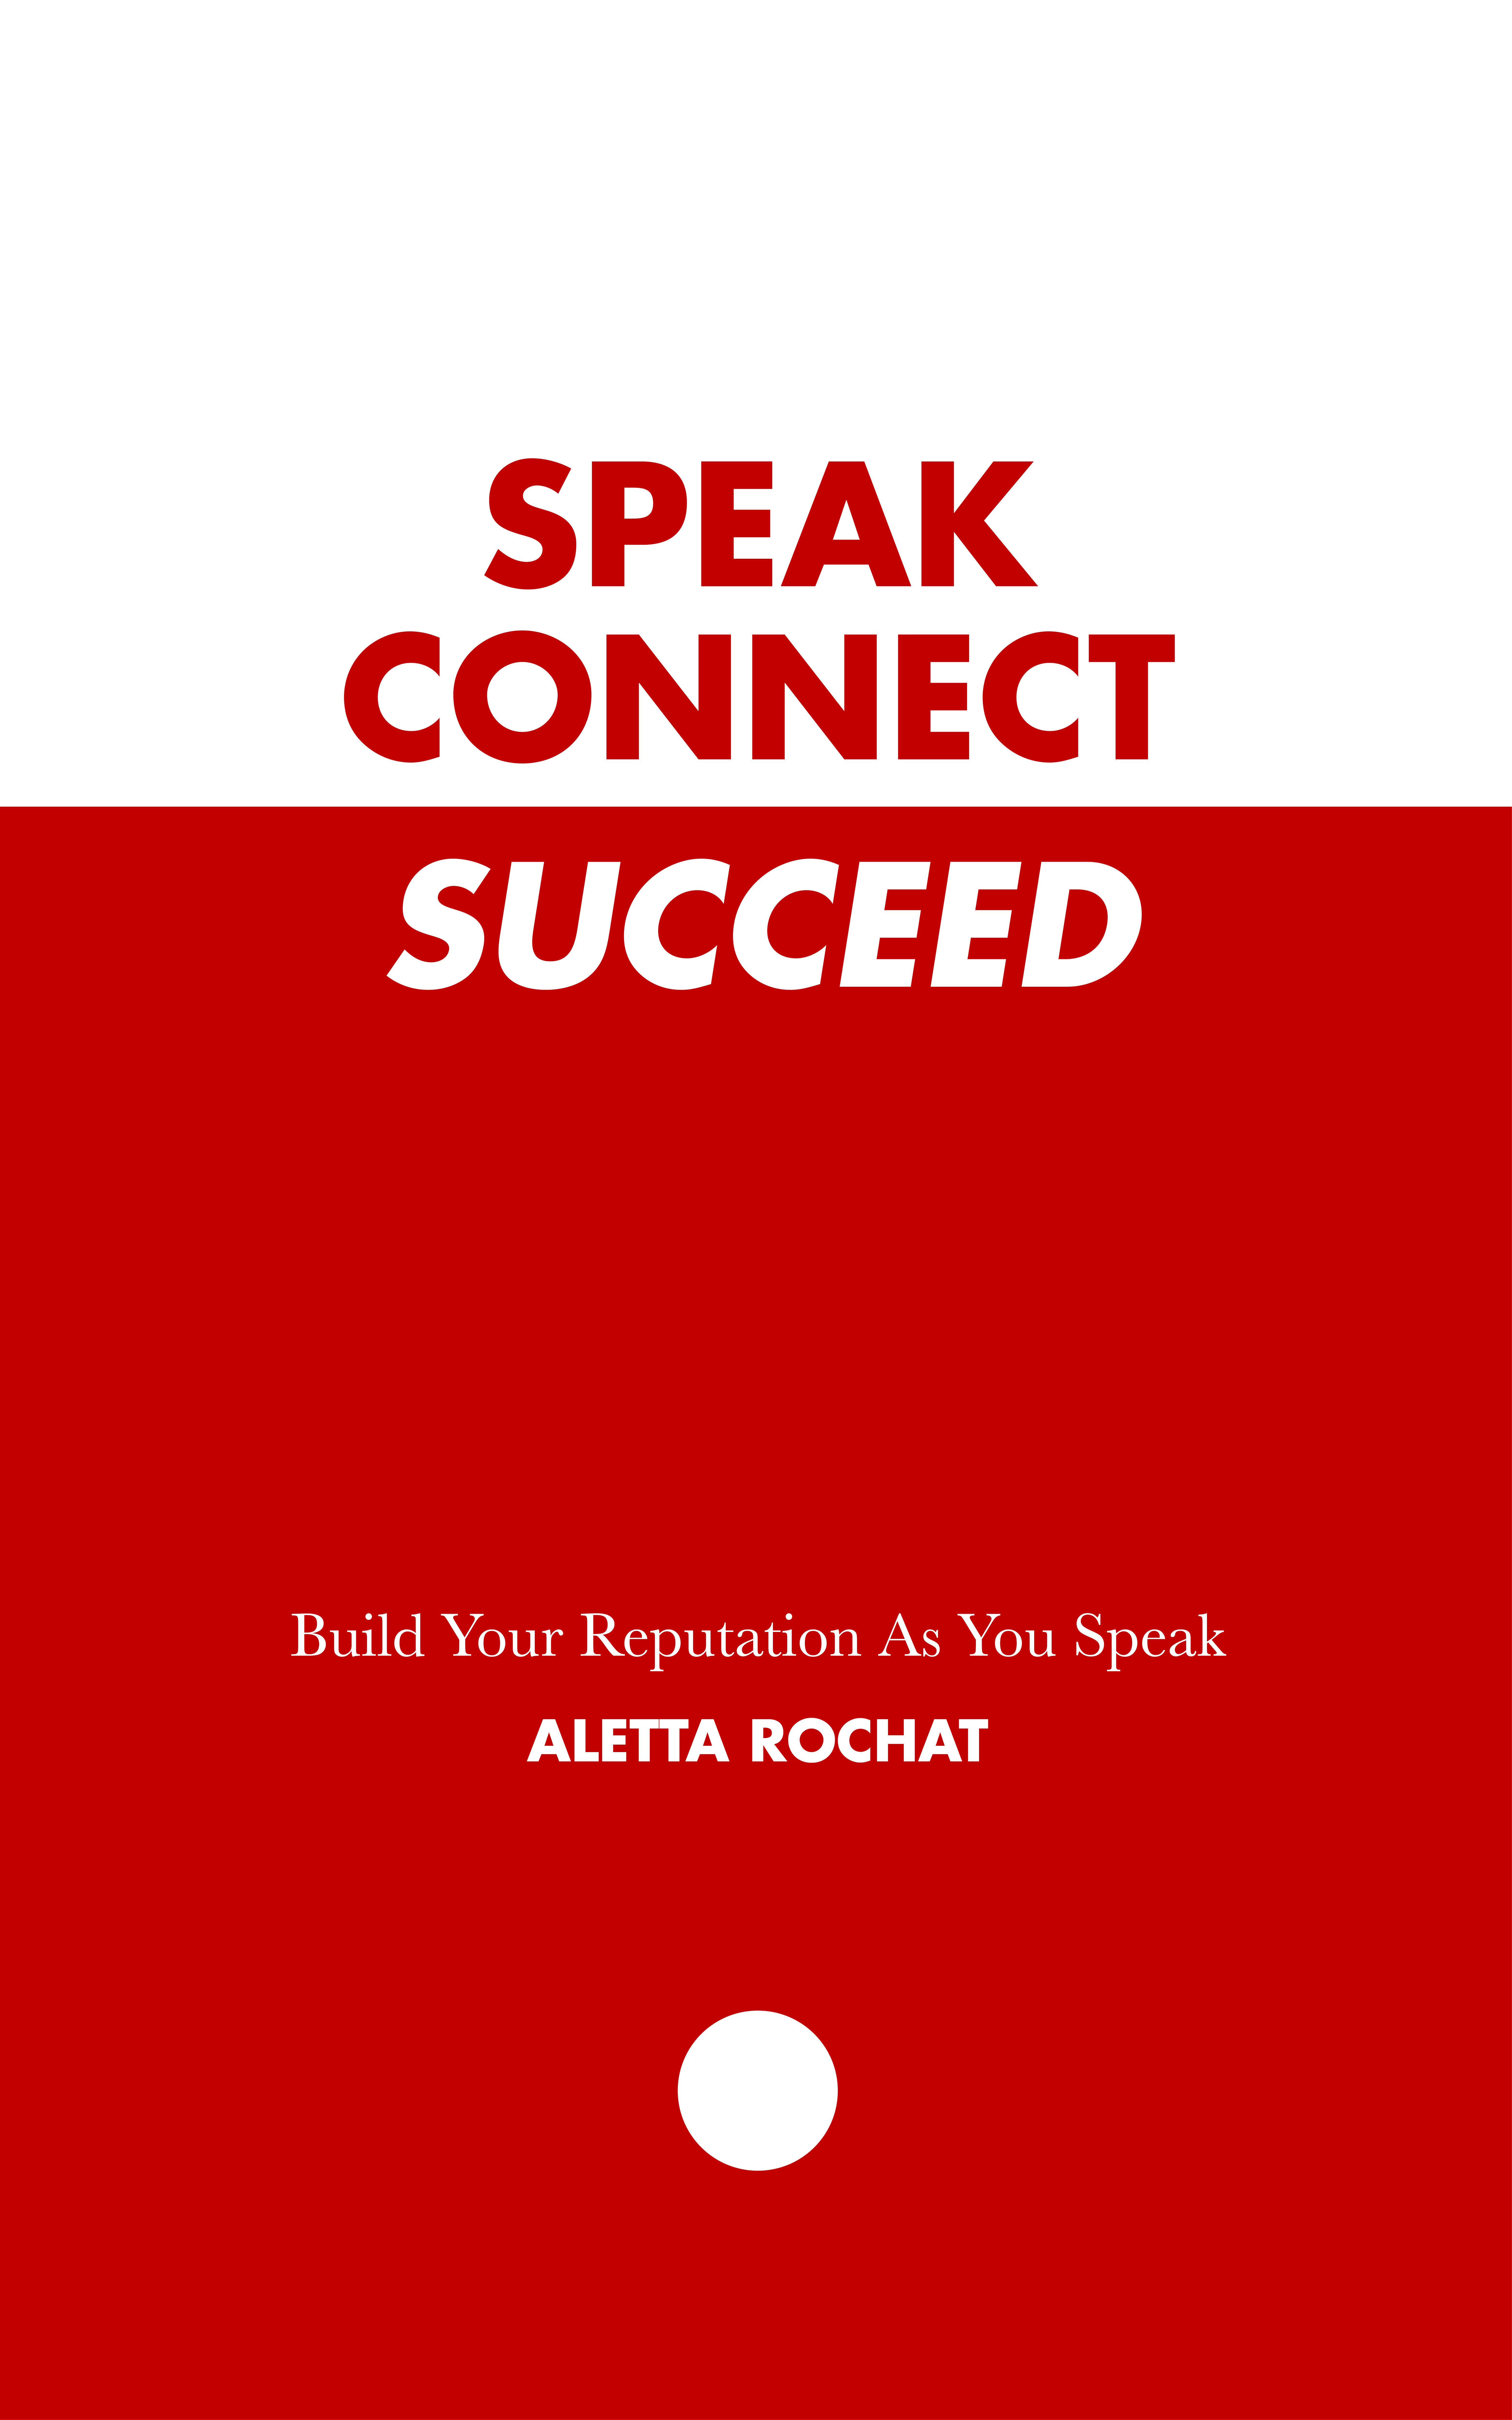 Speak Connect Succeed - Build Your Reputation As You Speak 00001